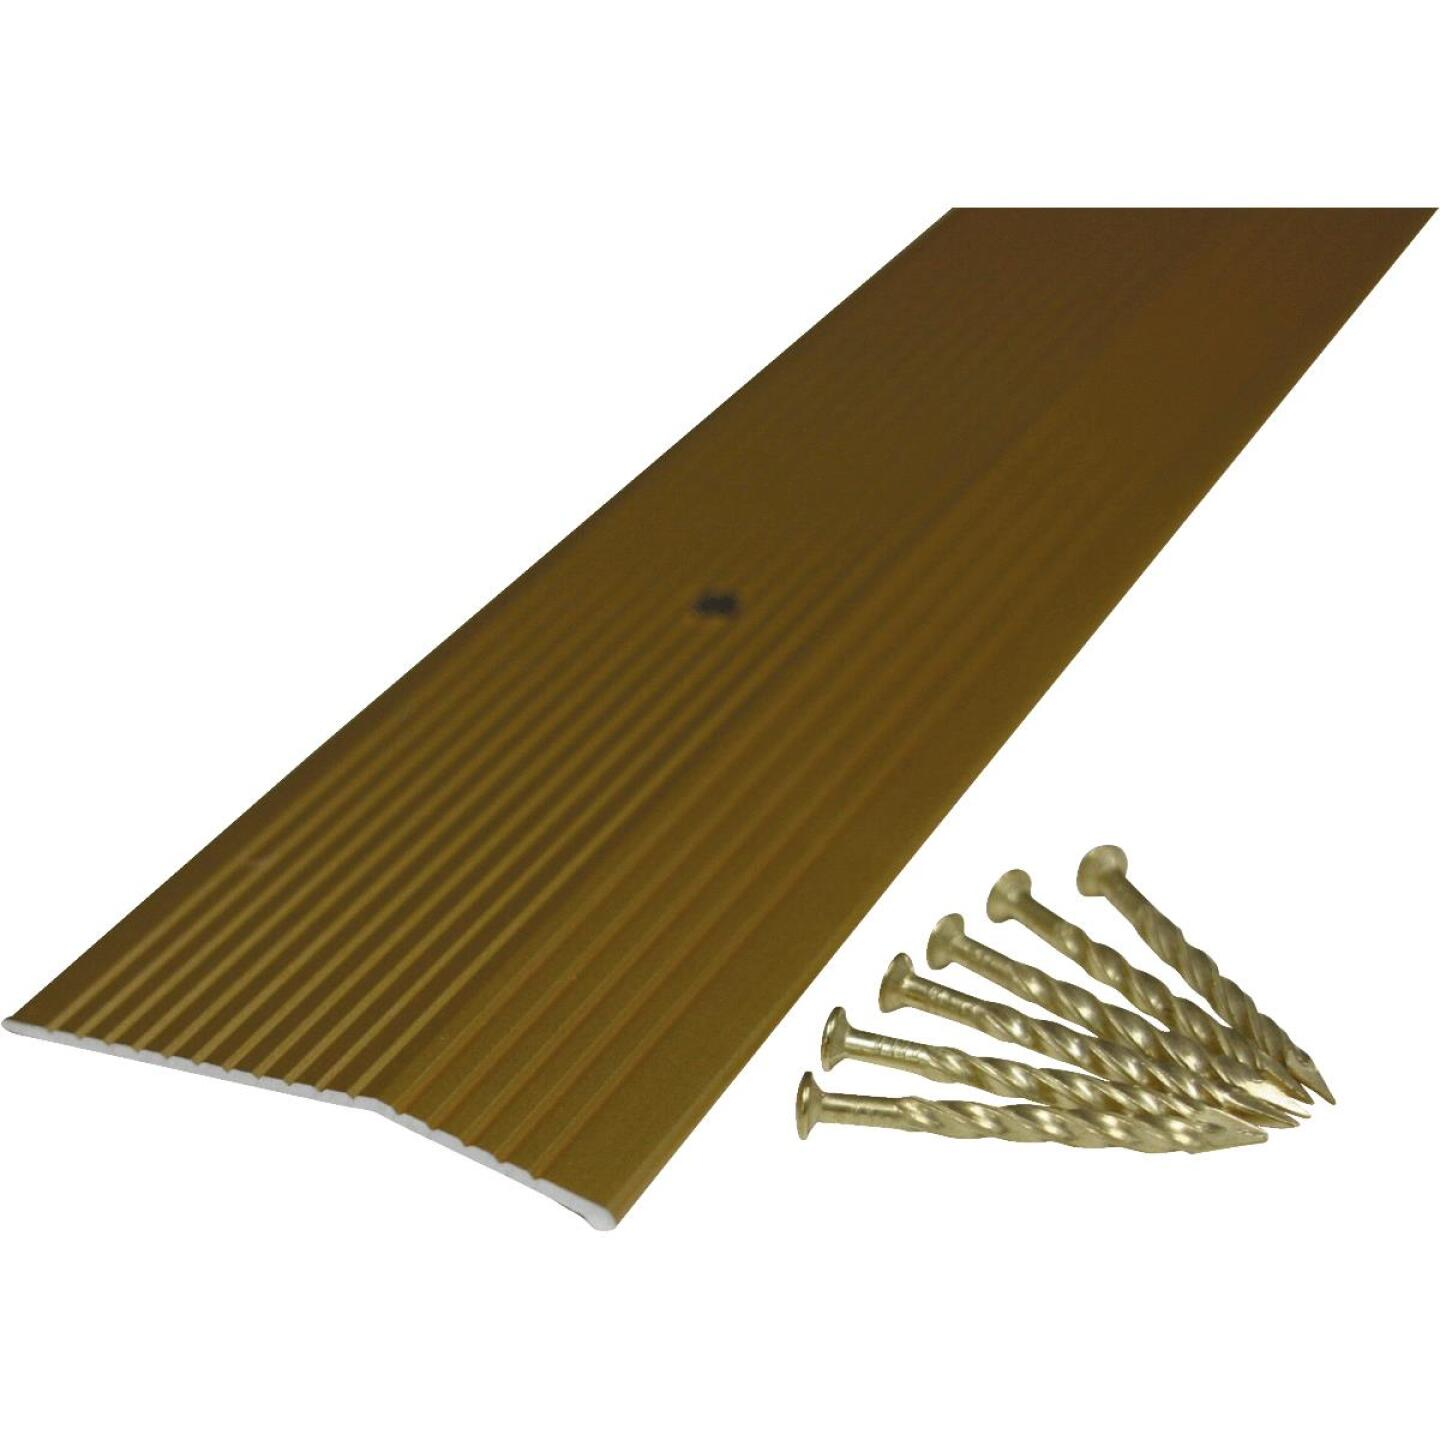 M-D Satin Brass Fluted 2 In. x 3 Ft. Aluminum Carpet Trim Bar, Extra Wide Image 3